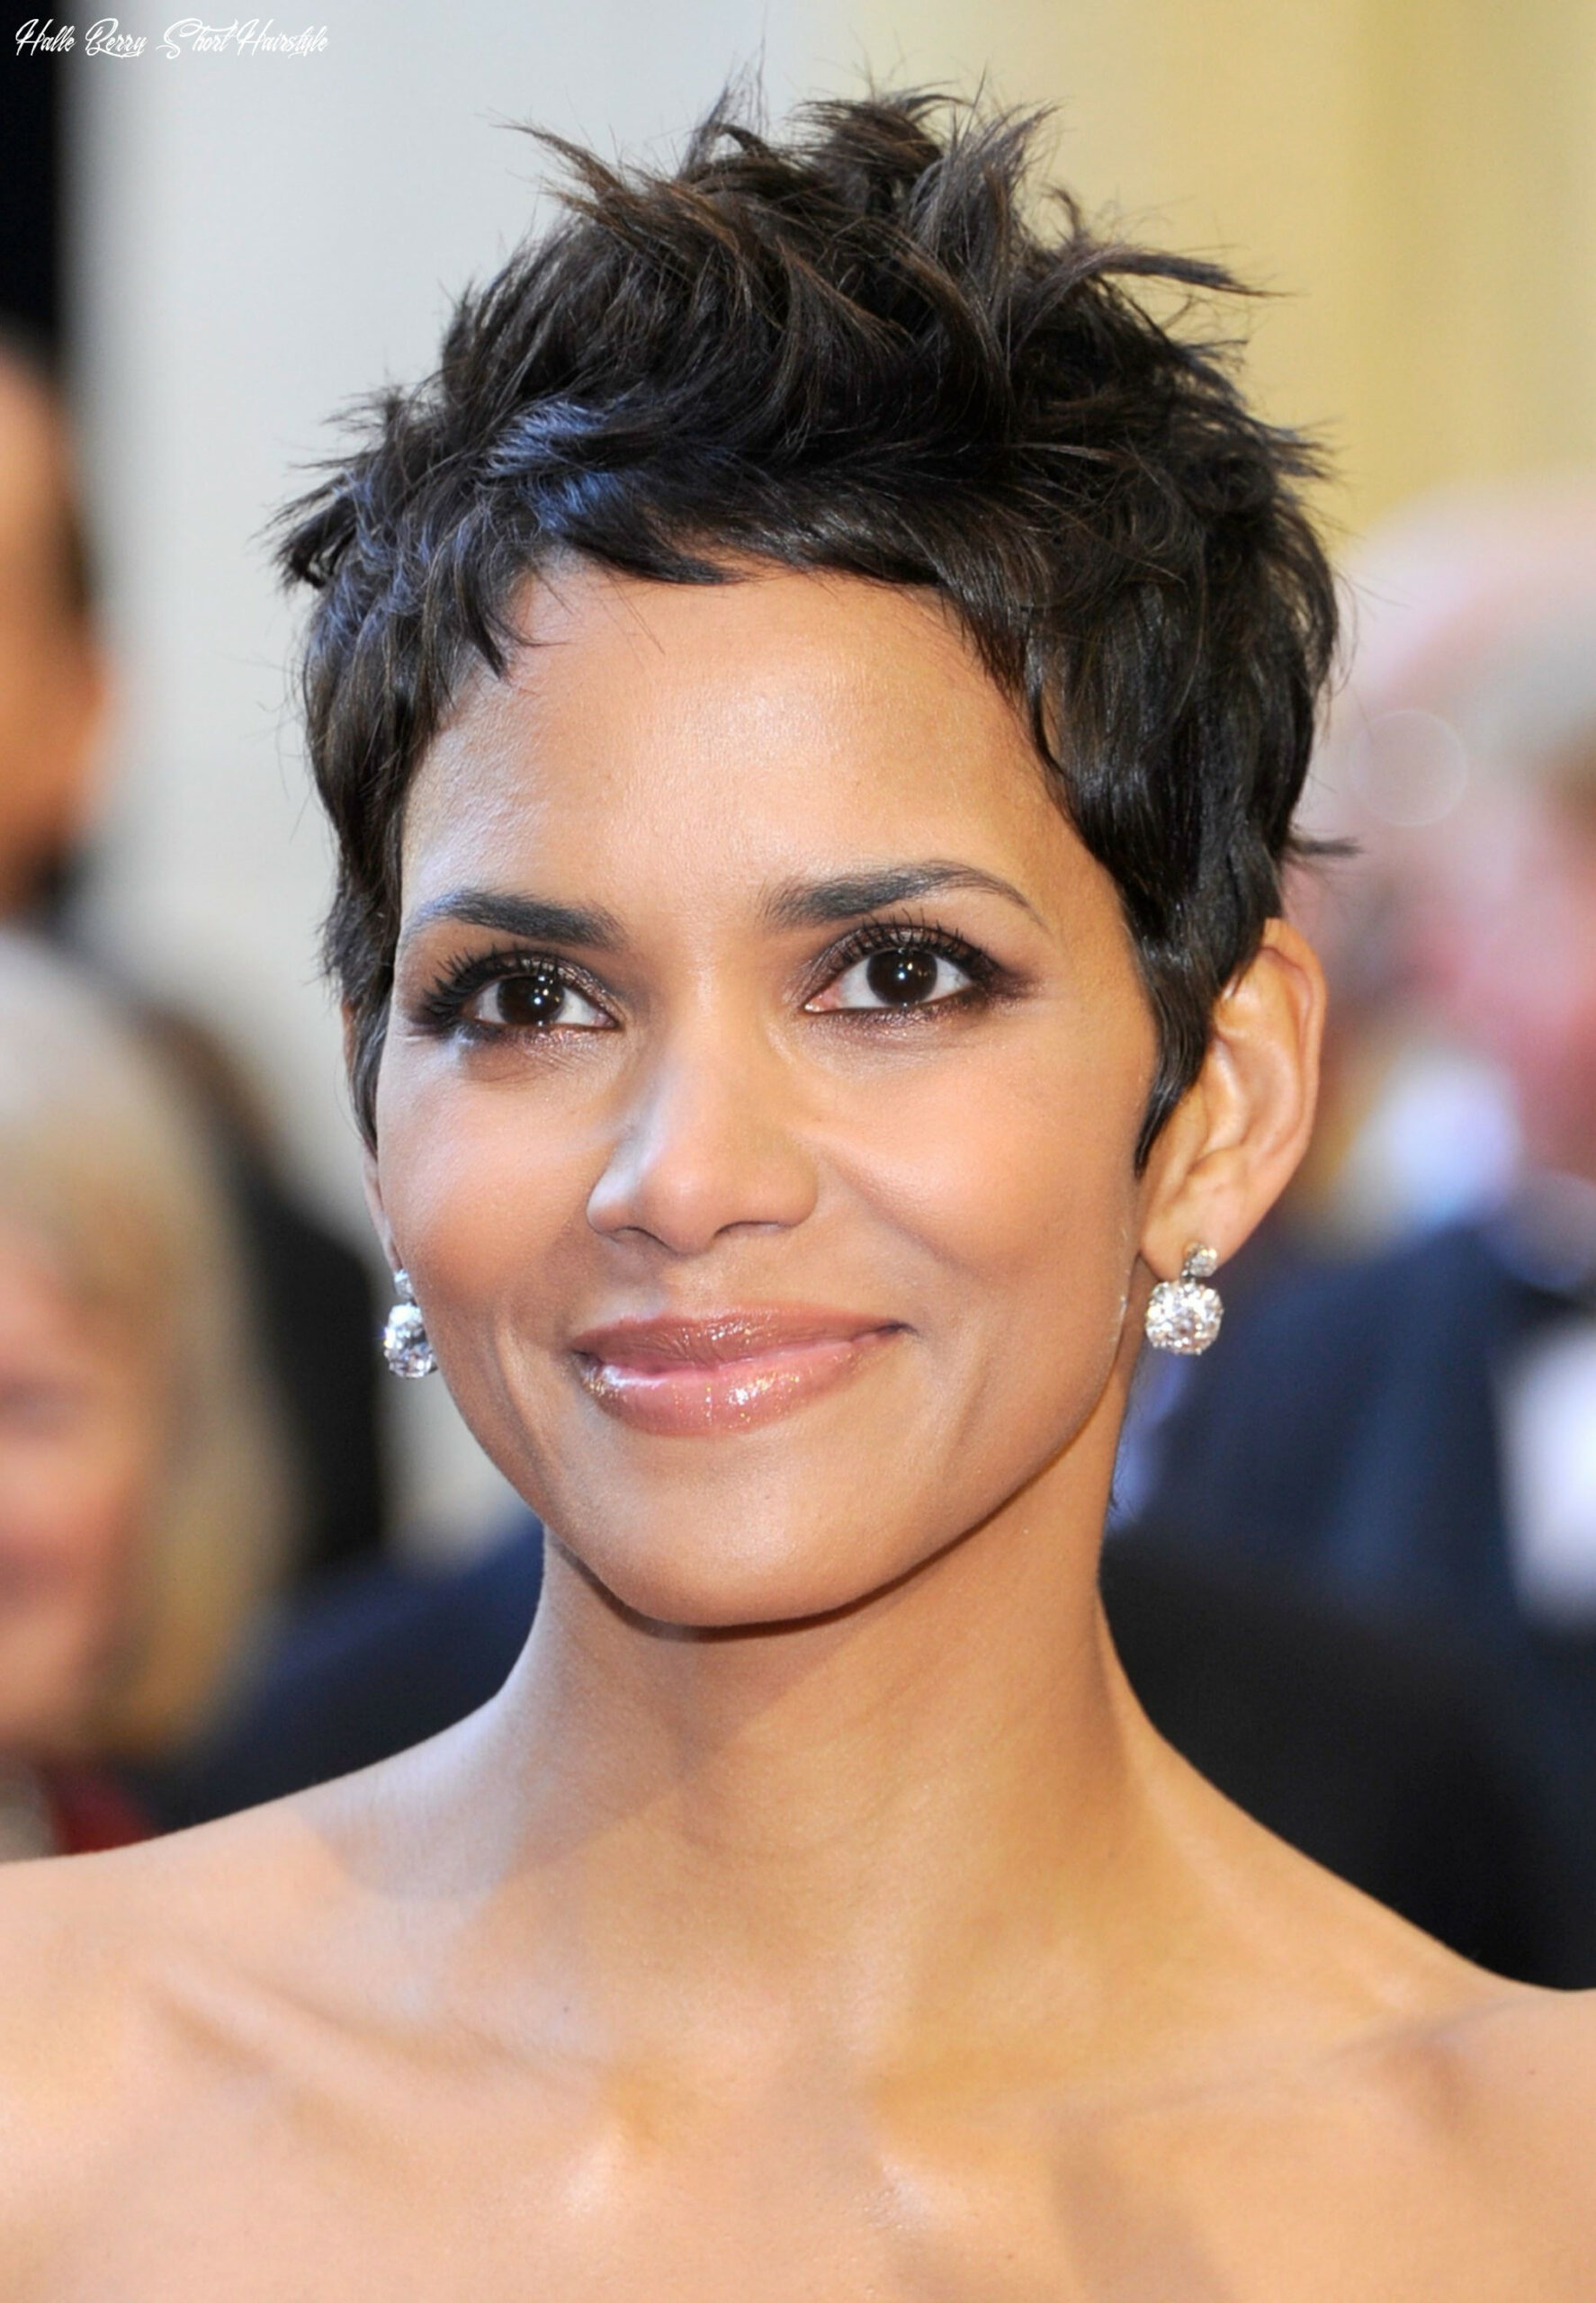 Halle berry … | halle berry hairstyles, celebrity short hair